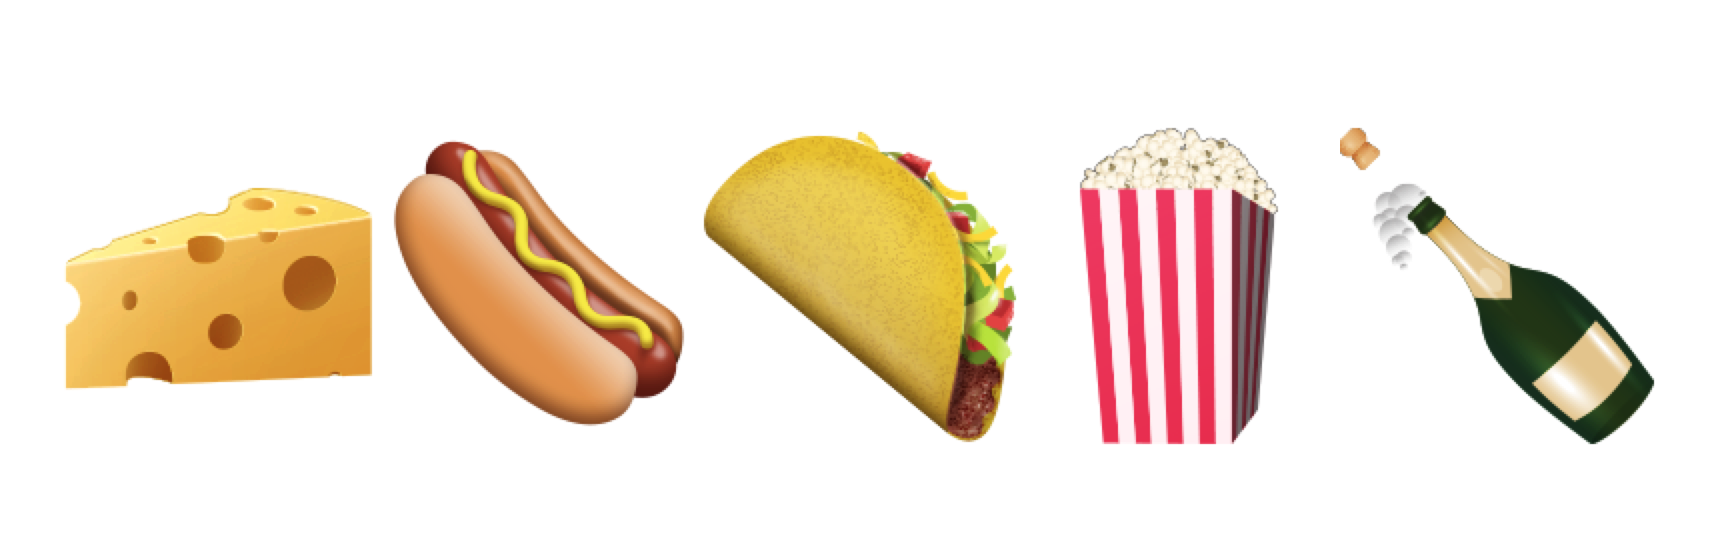 Ios 91 emoji changelog above new emoji additions to the food and drink category biocorpaavc Image collections